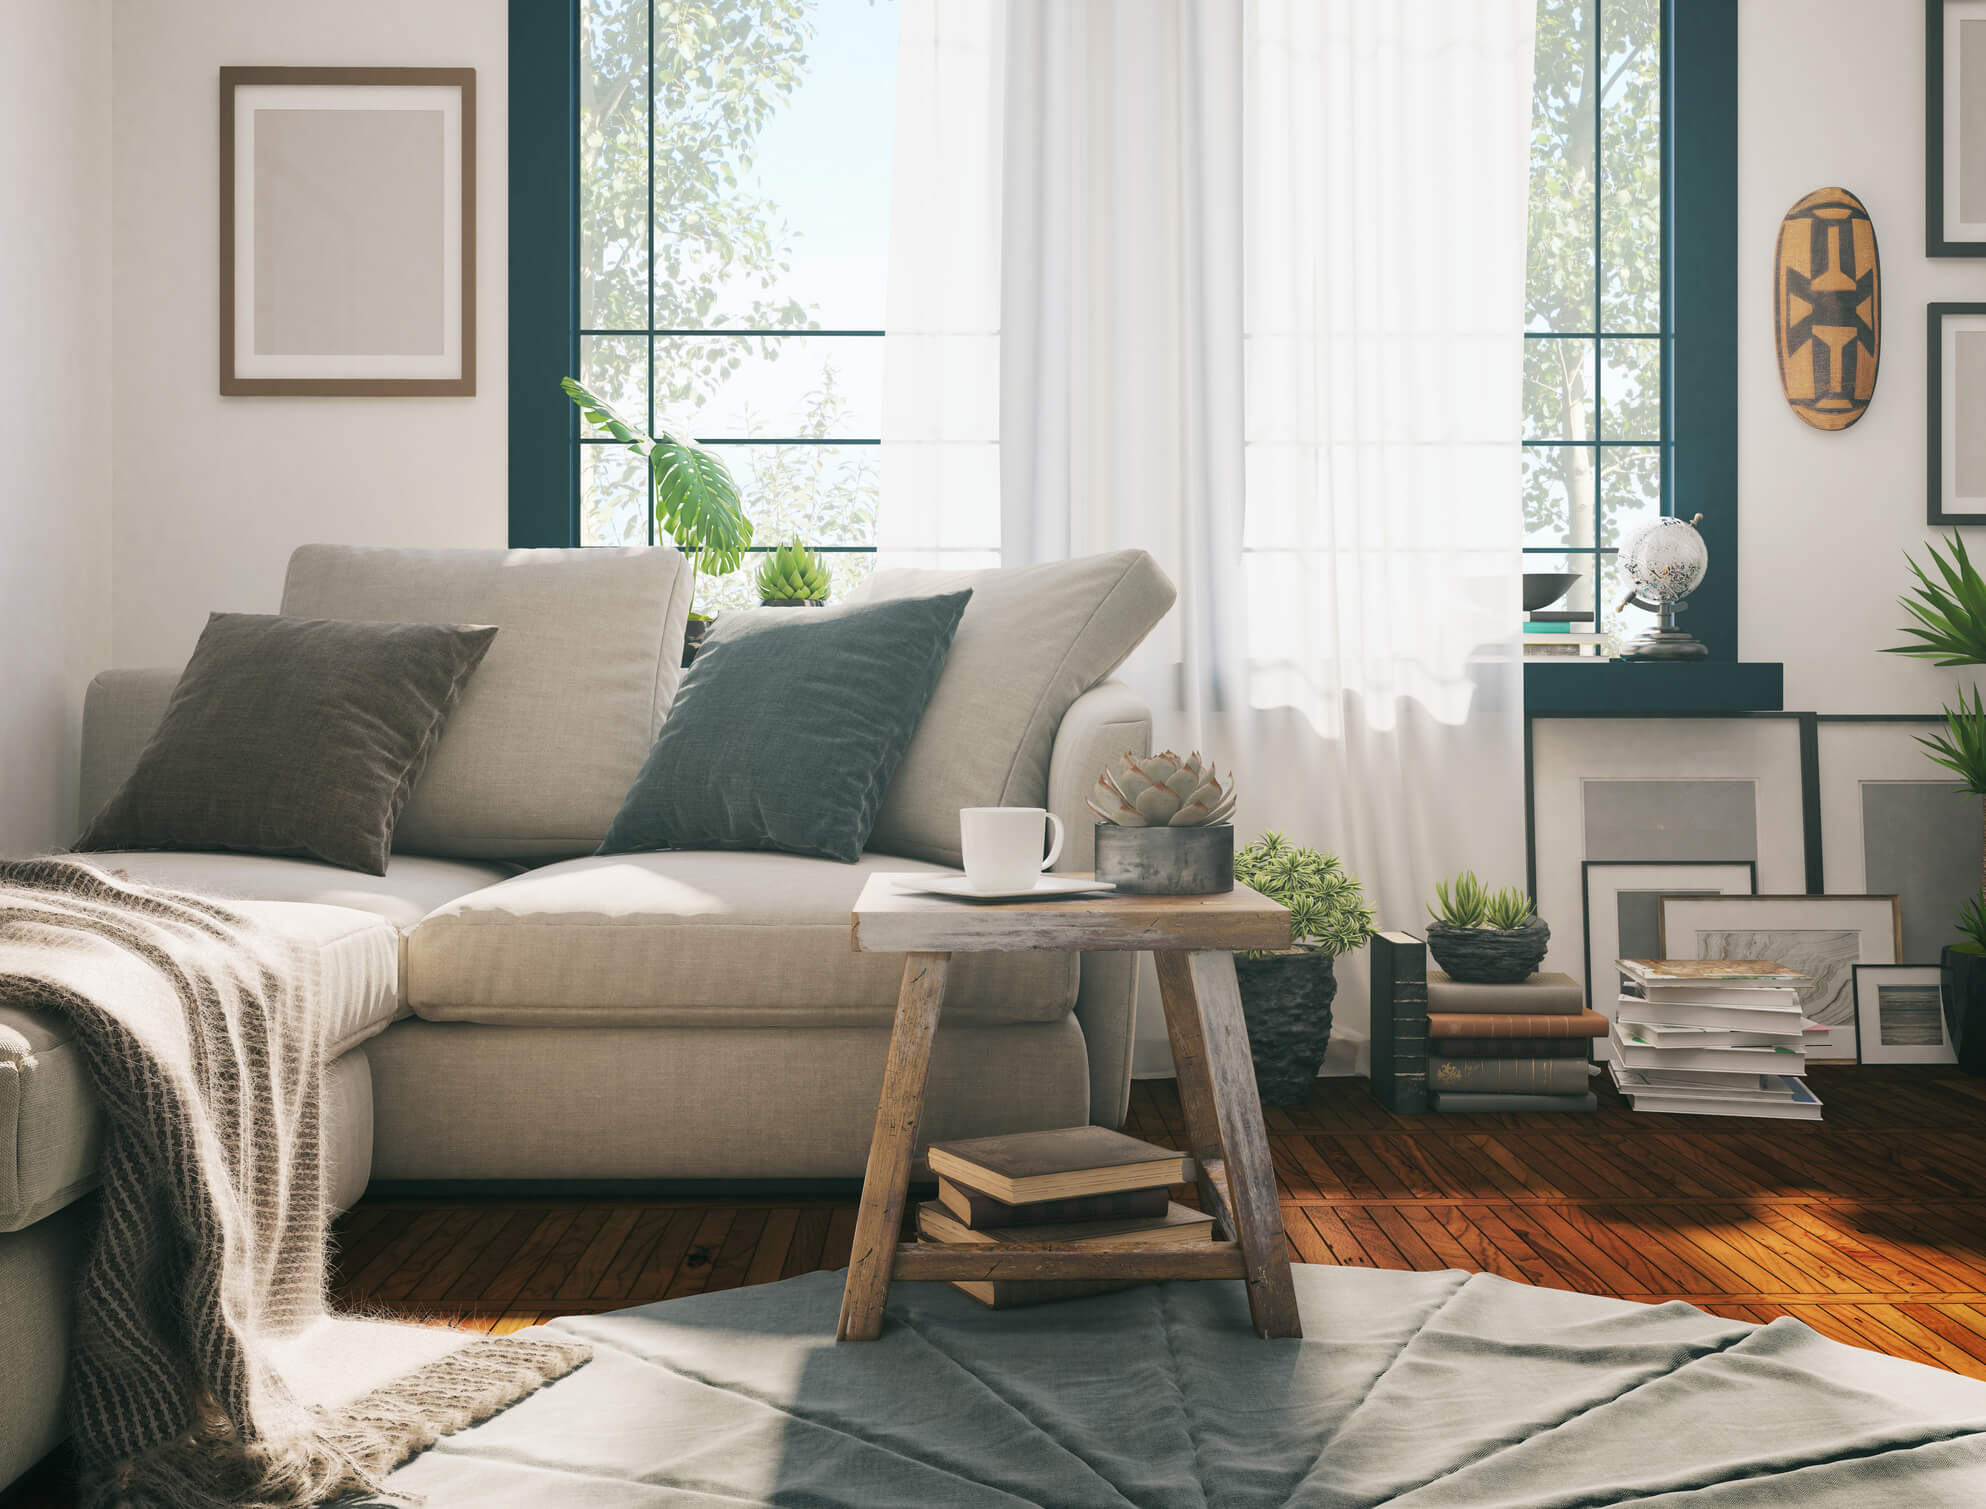 Living room fit for a smart hub